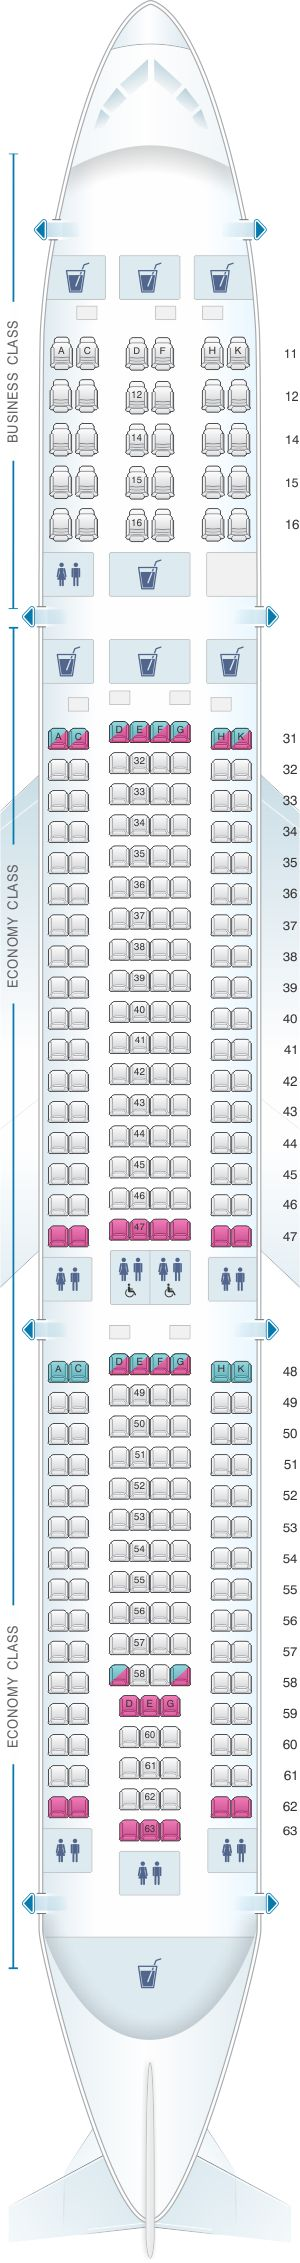 Seat Map Singapore Airlines Airbus A330 300